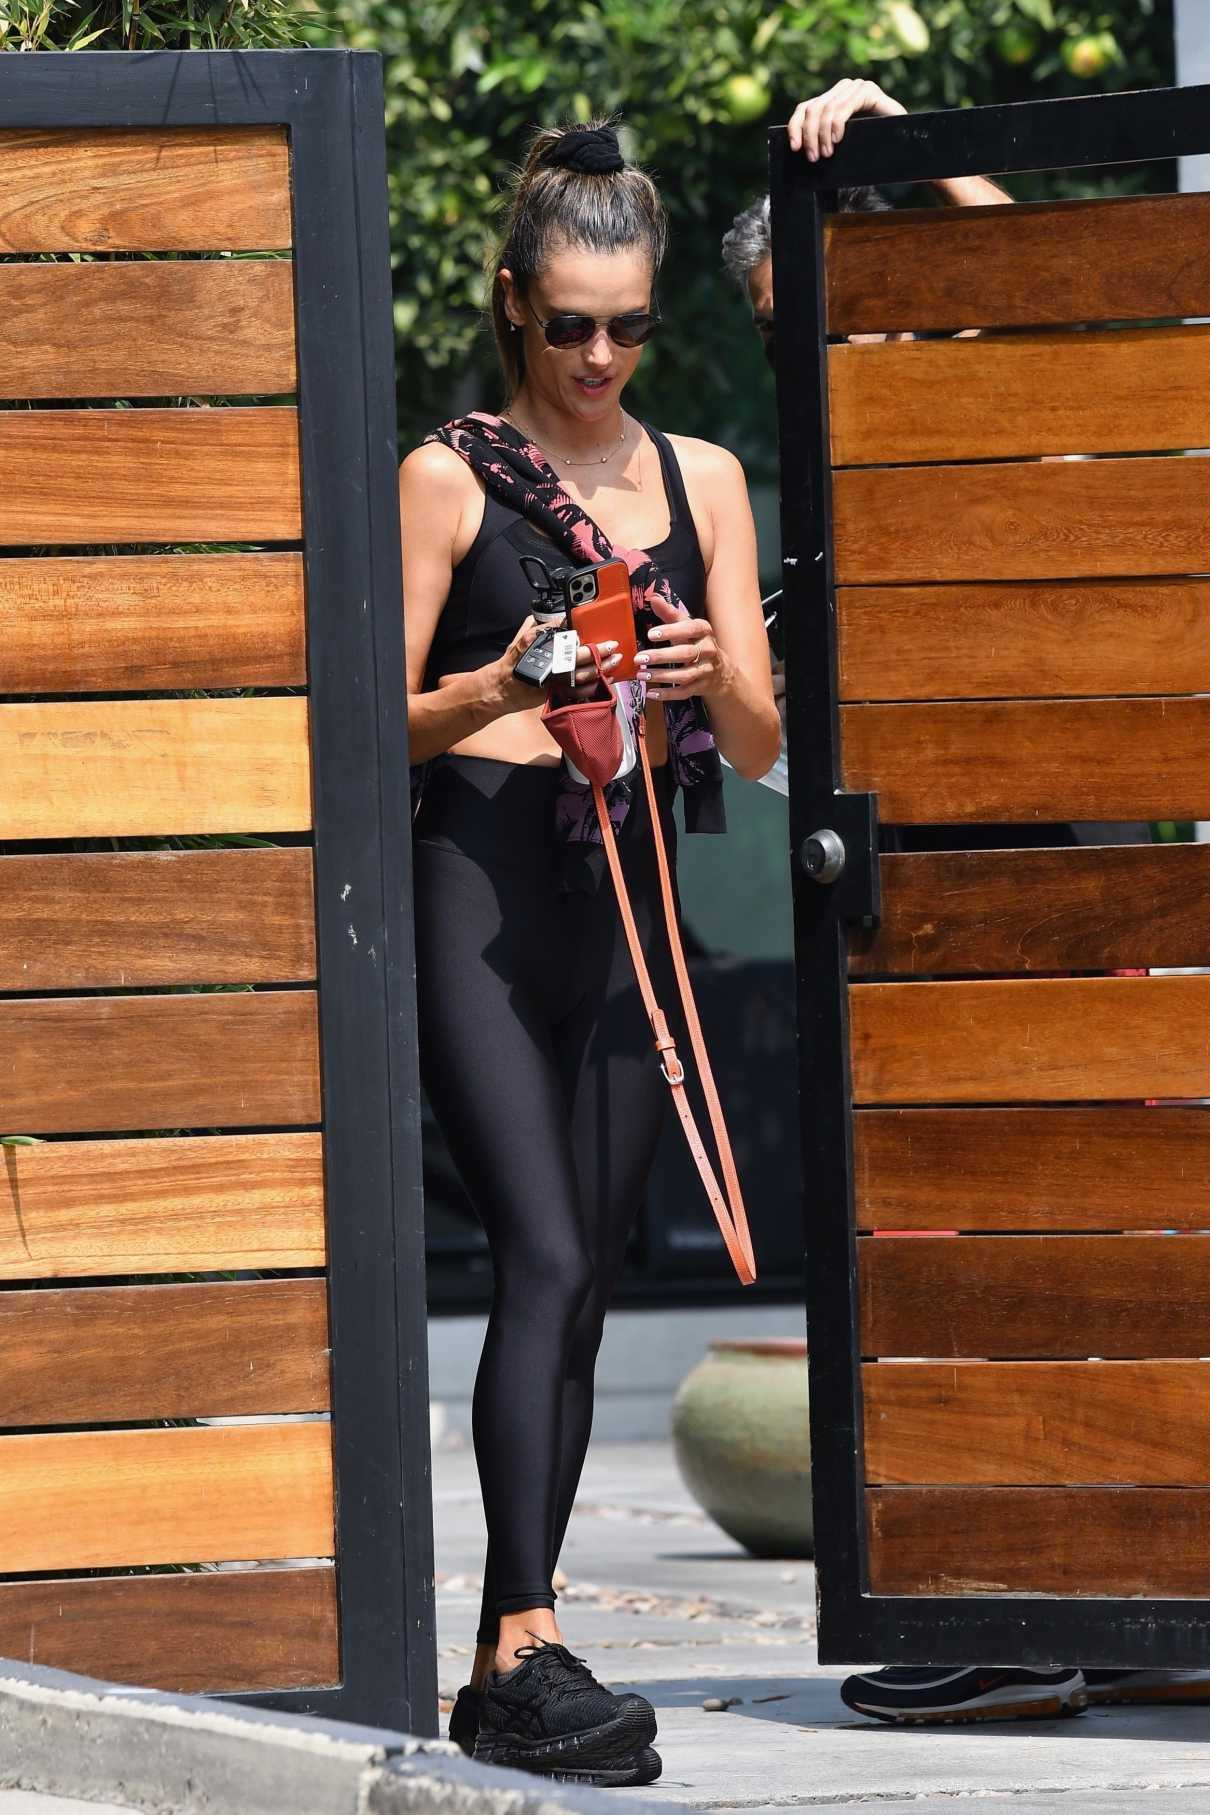 Alessandra Ambrosio in a Black Exercise Outfit